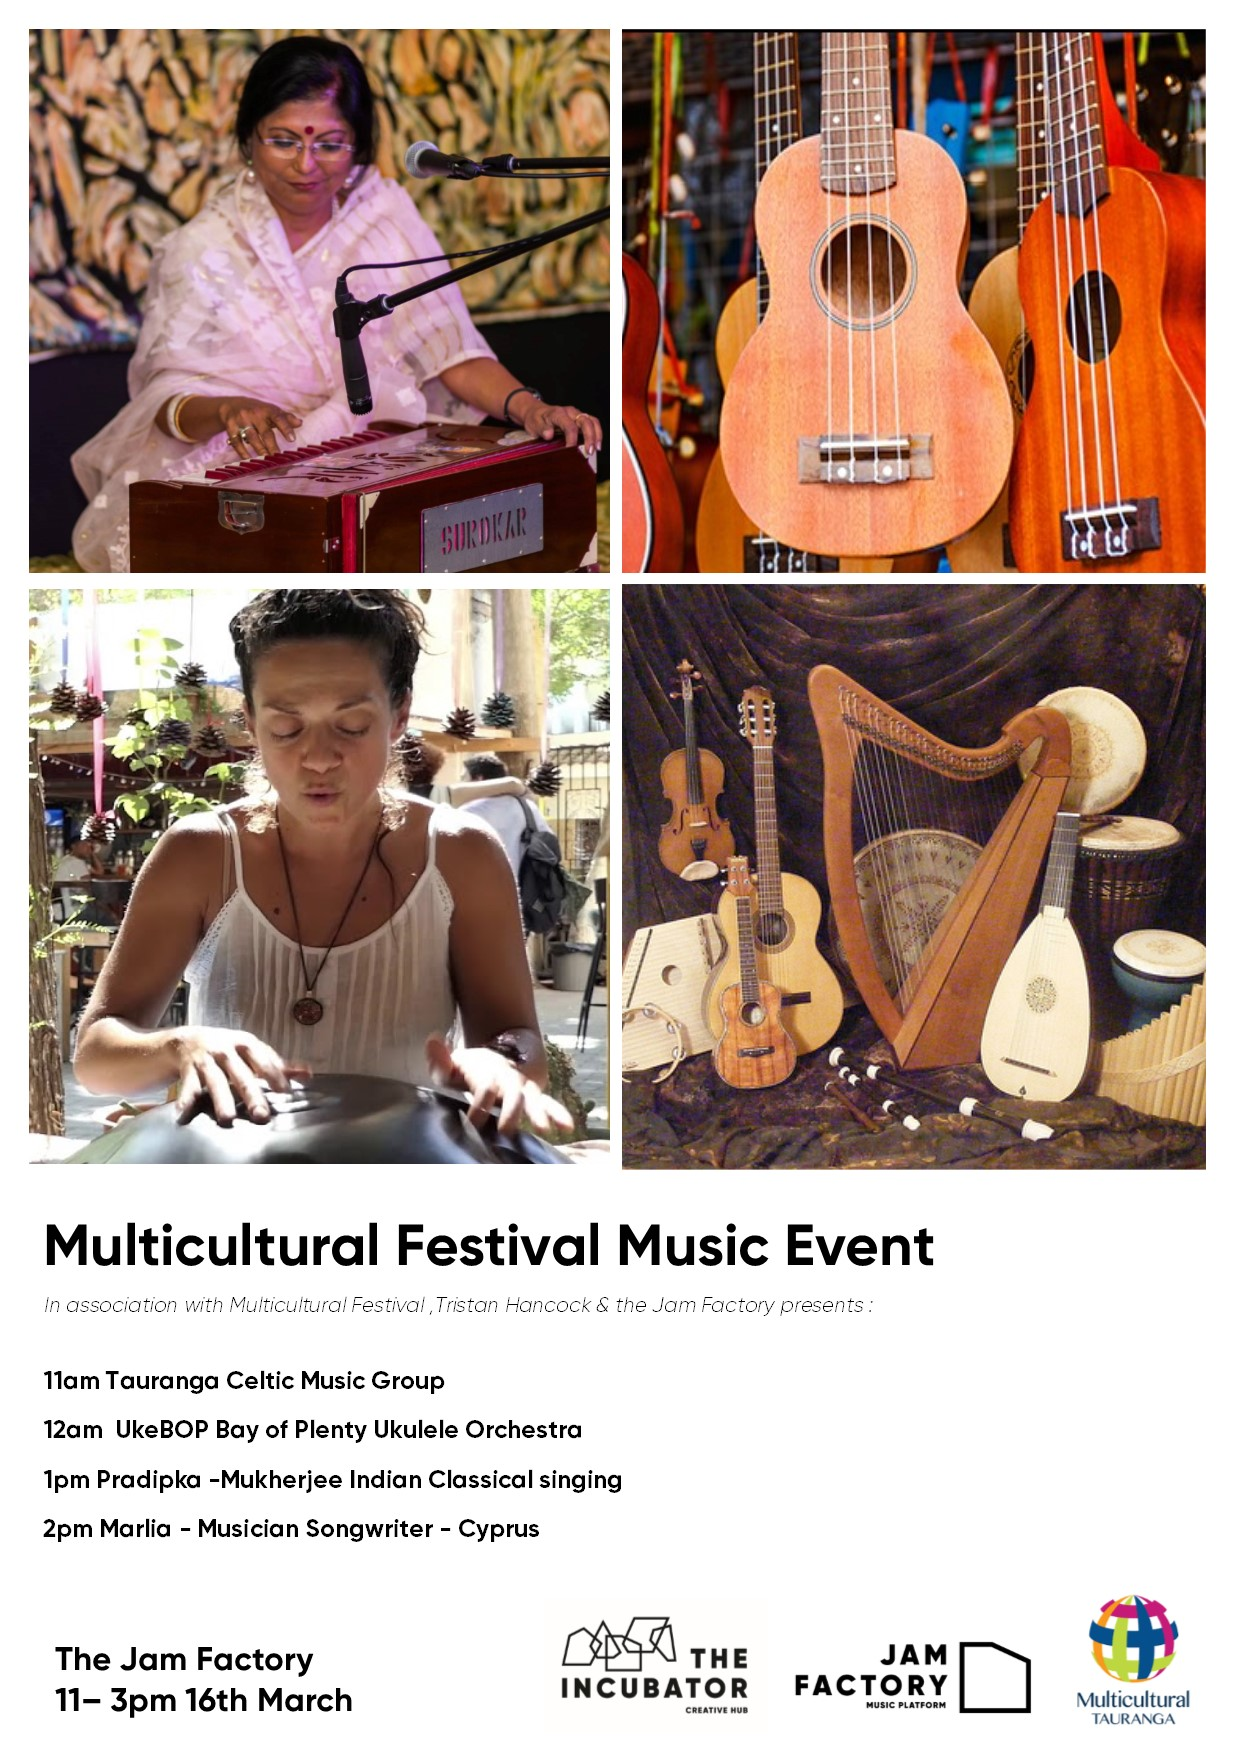 multiculturalmusic event